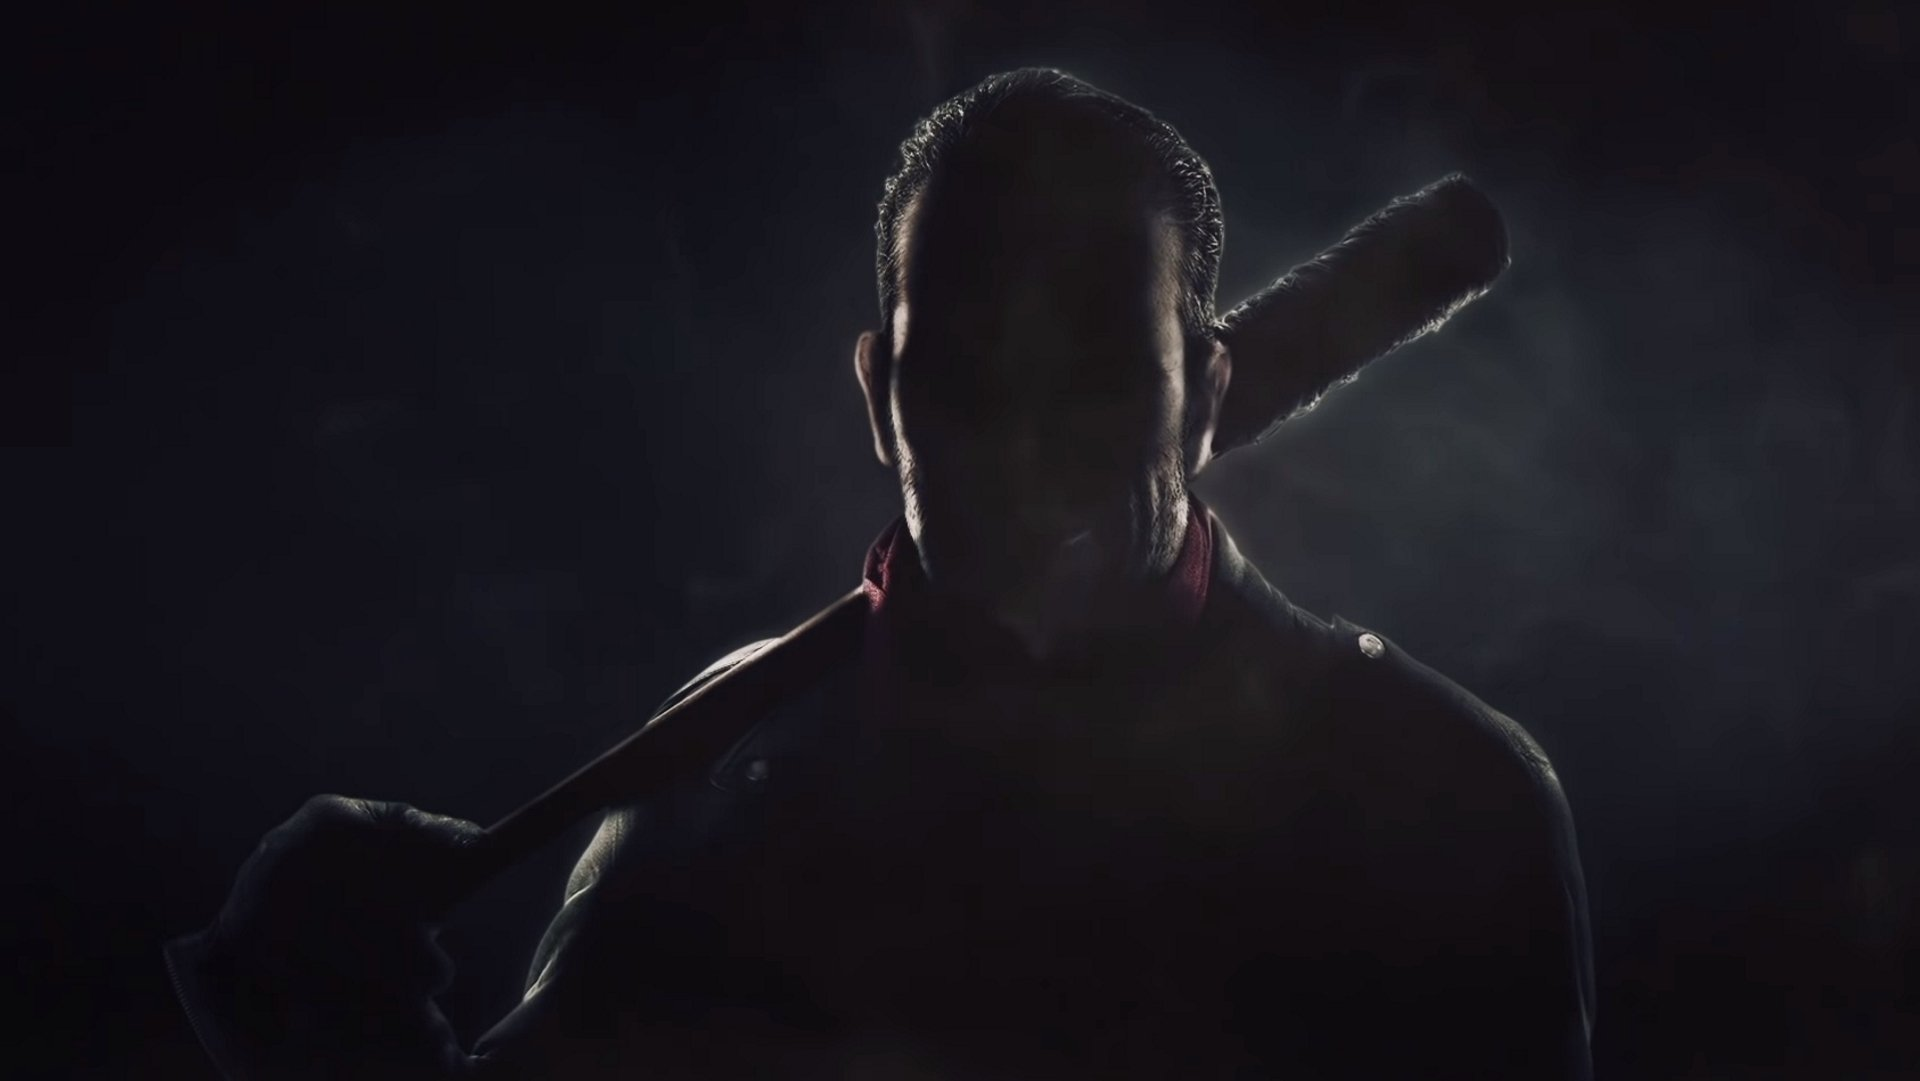 The Walking Dead's Negan rejoindra Tekken 7 dans la passe de saison 2